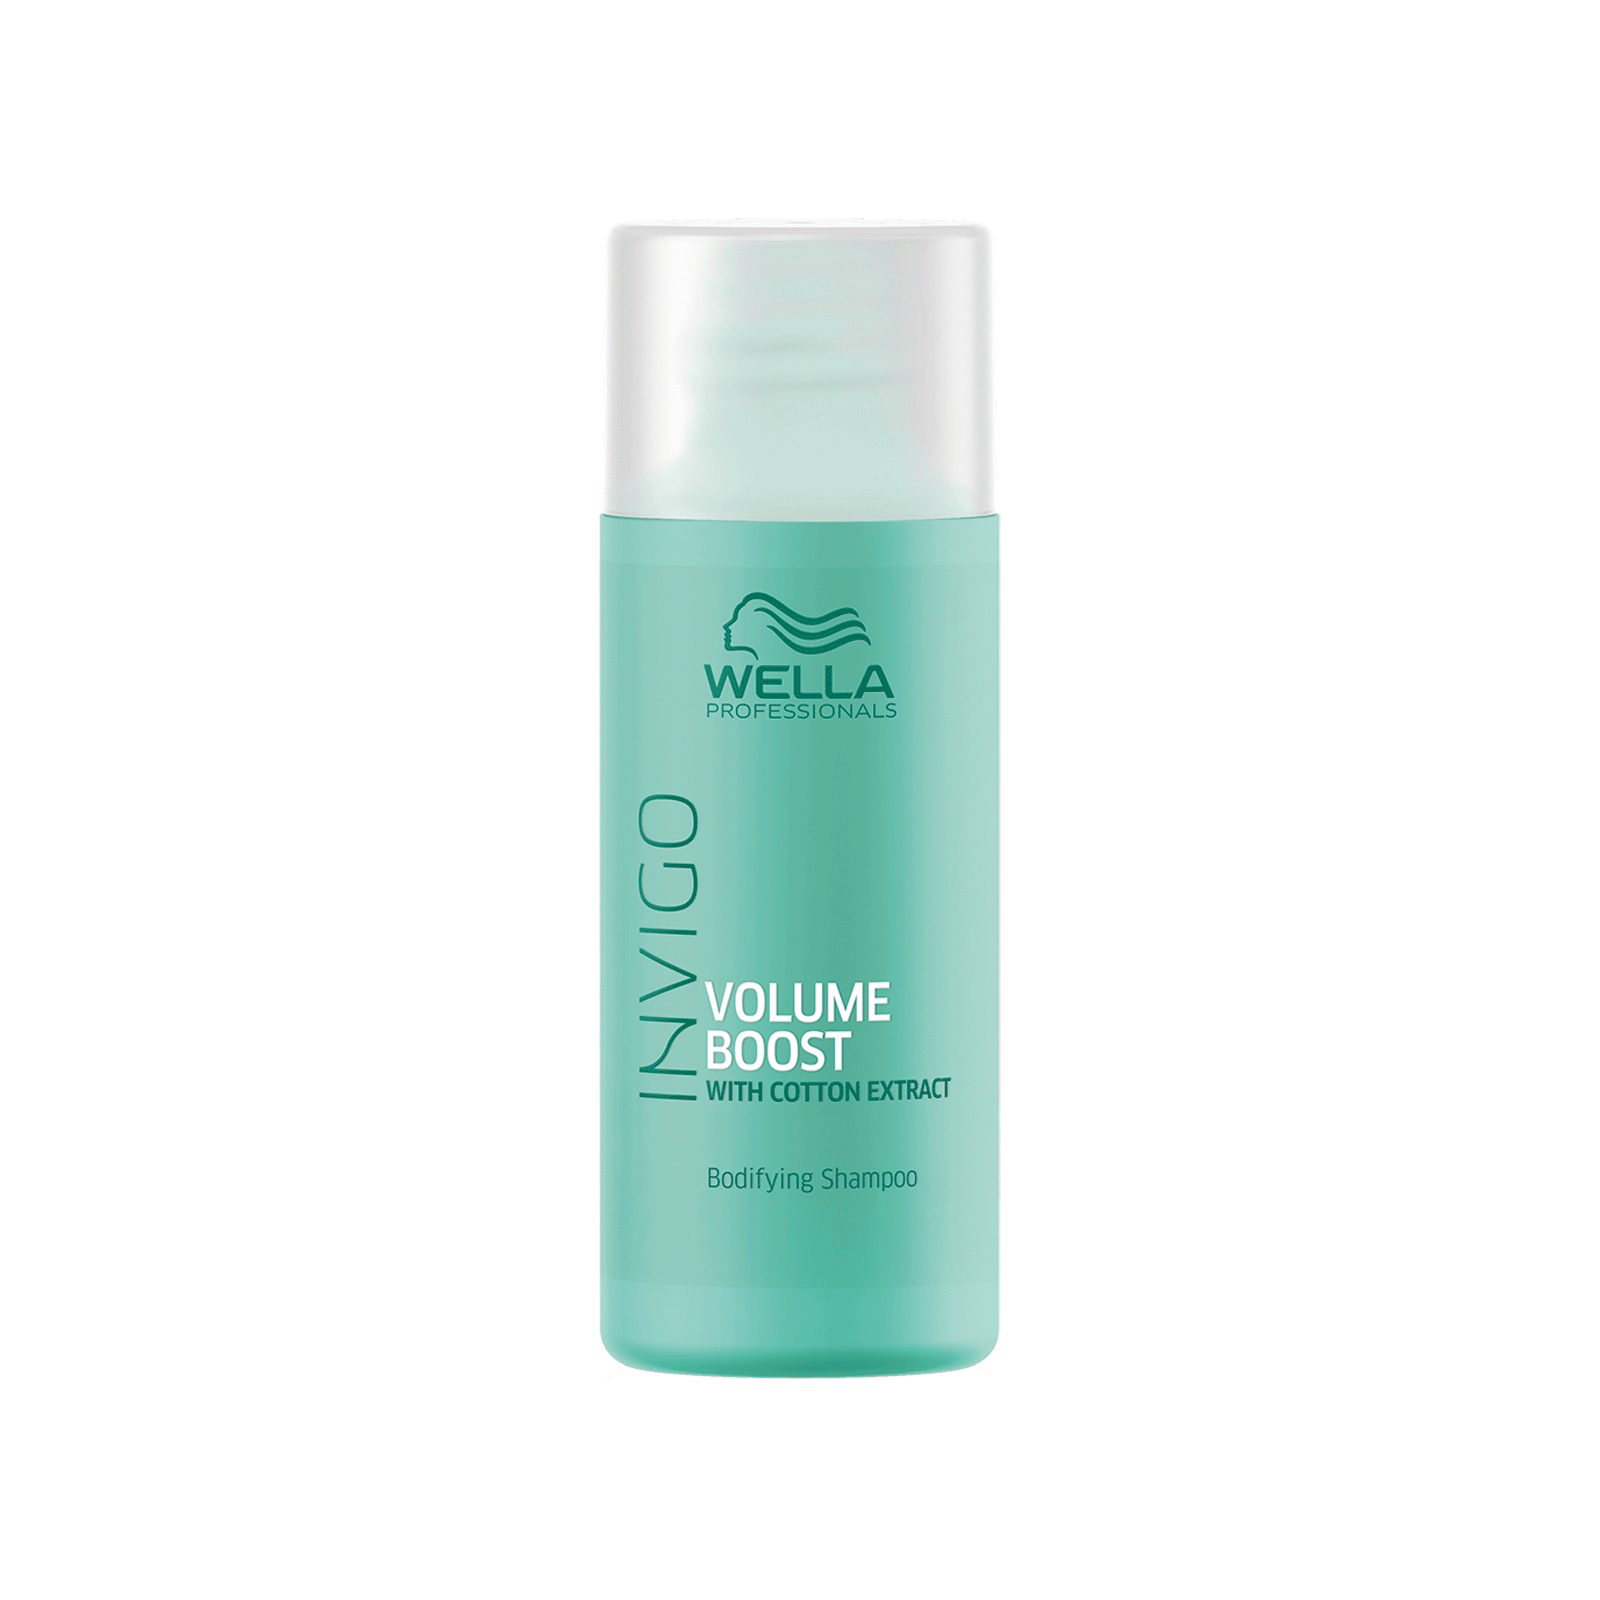 INVIGO Volume Boost Bodifying Shampoo